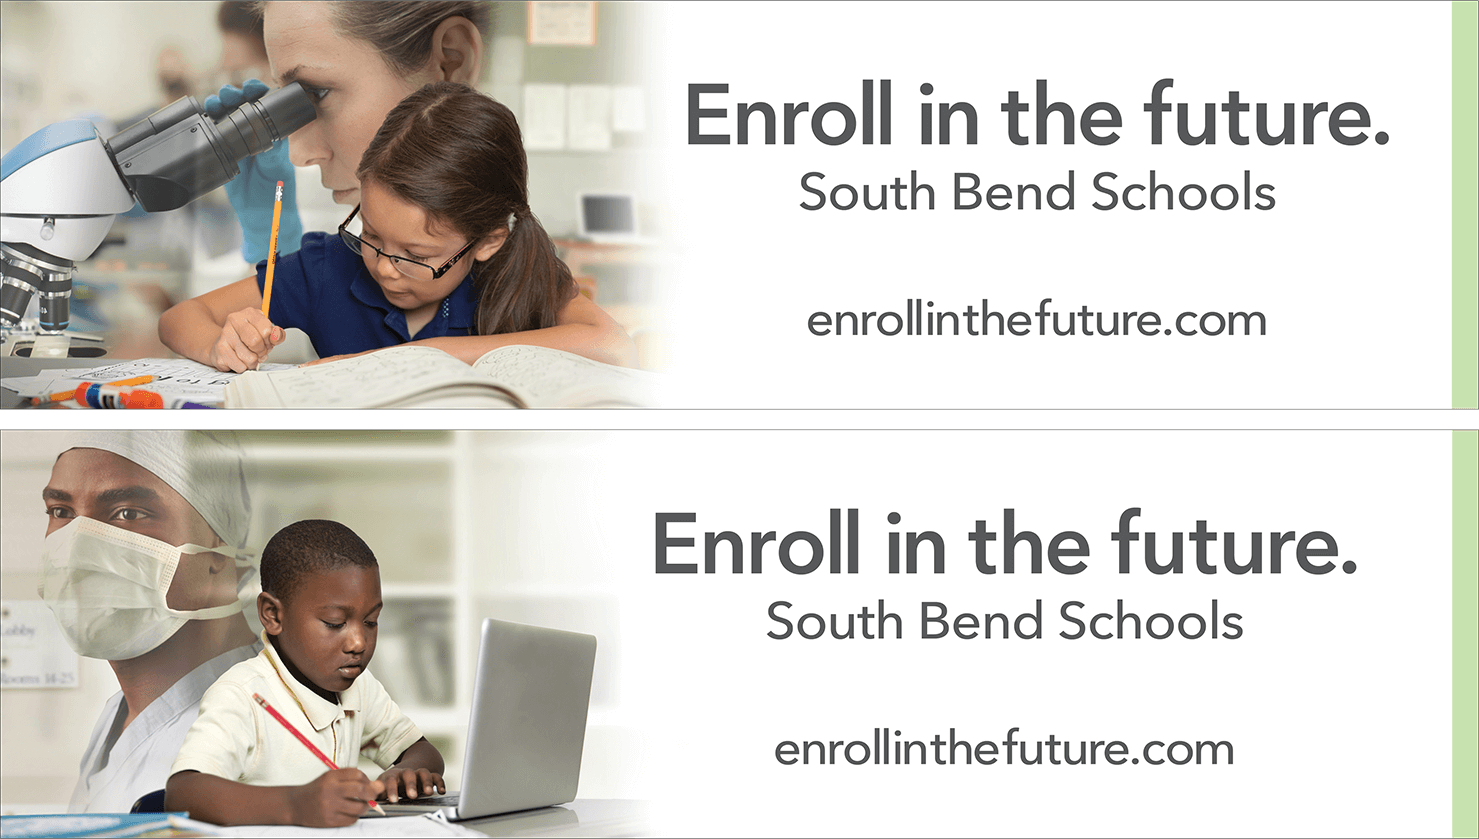 South Bend Schools <strong>Summer Enrollment Campaign</strong>